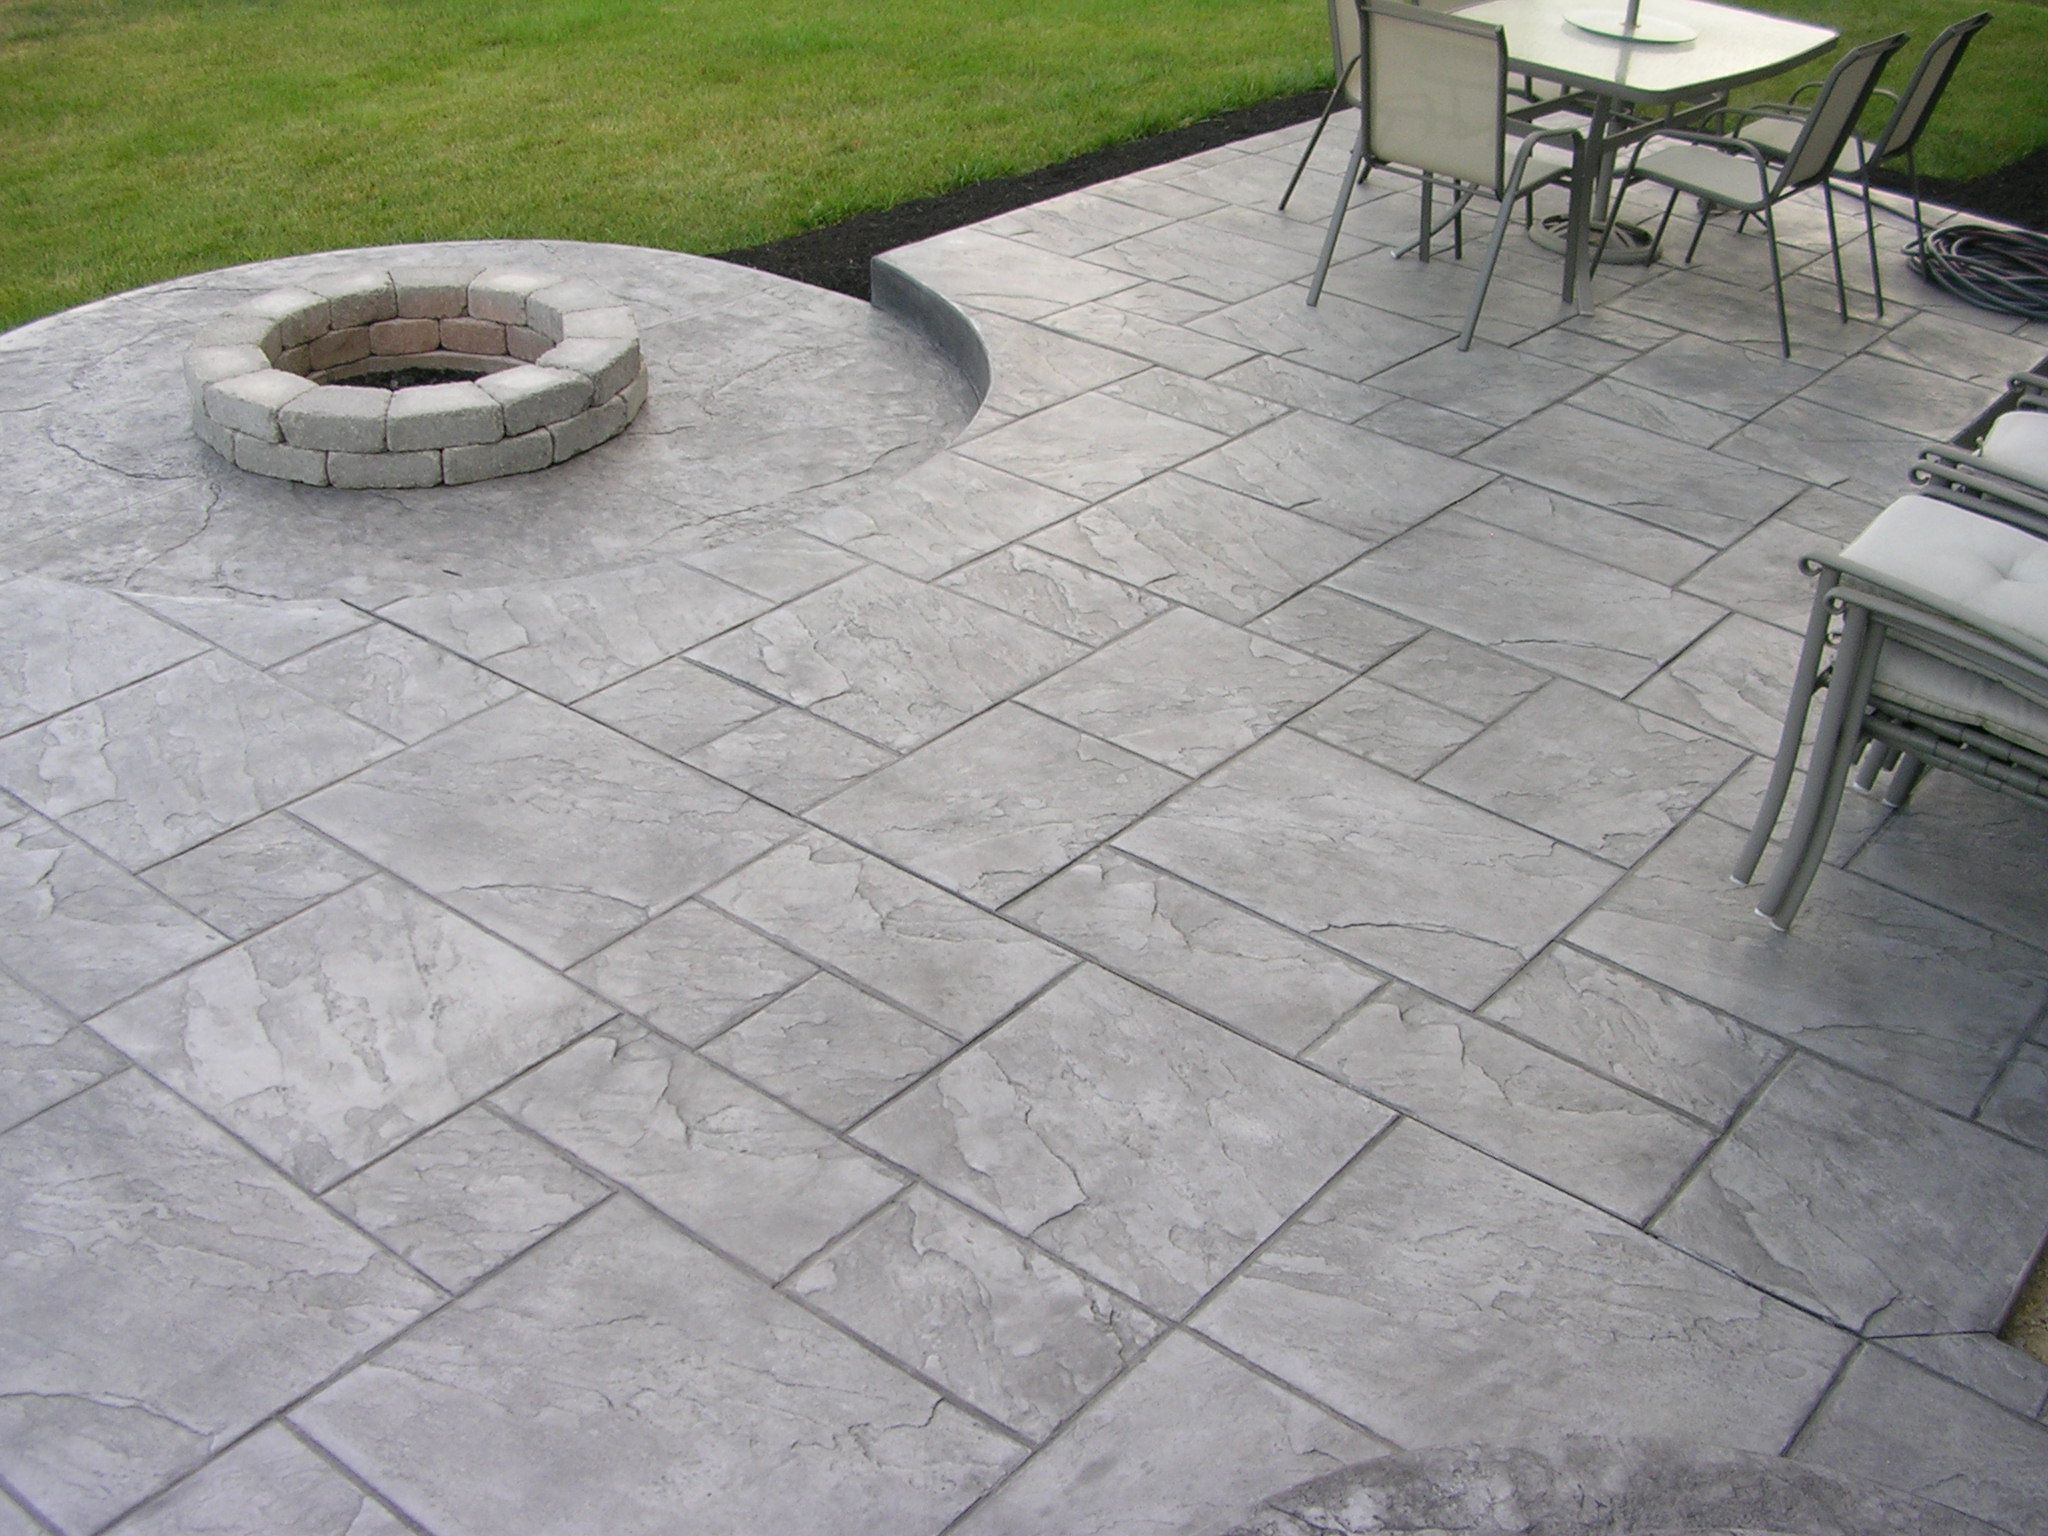 Stamped concrete patios driveways & walkways Columbus Ohio